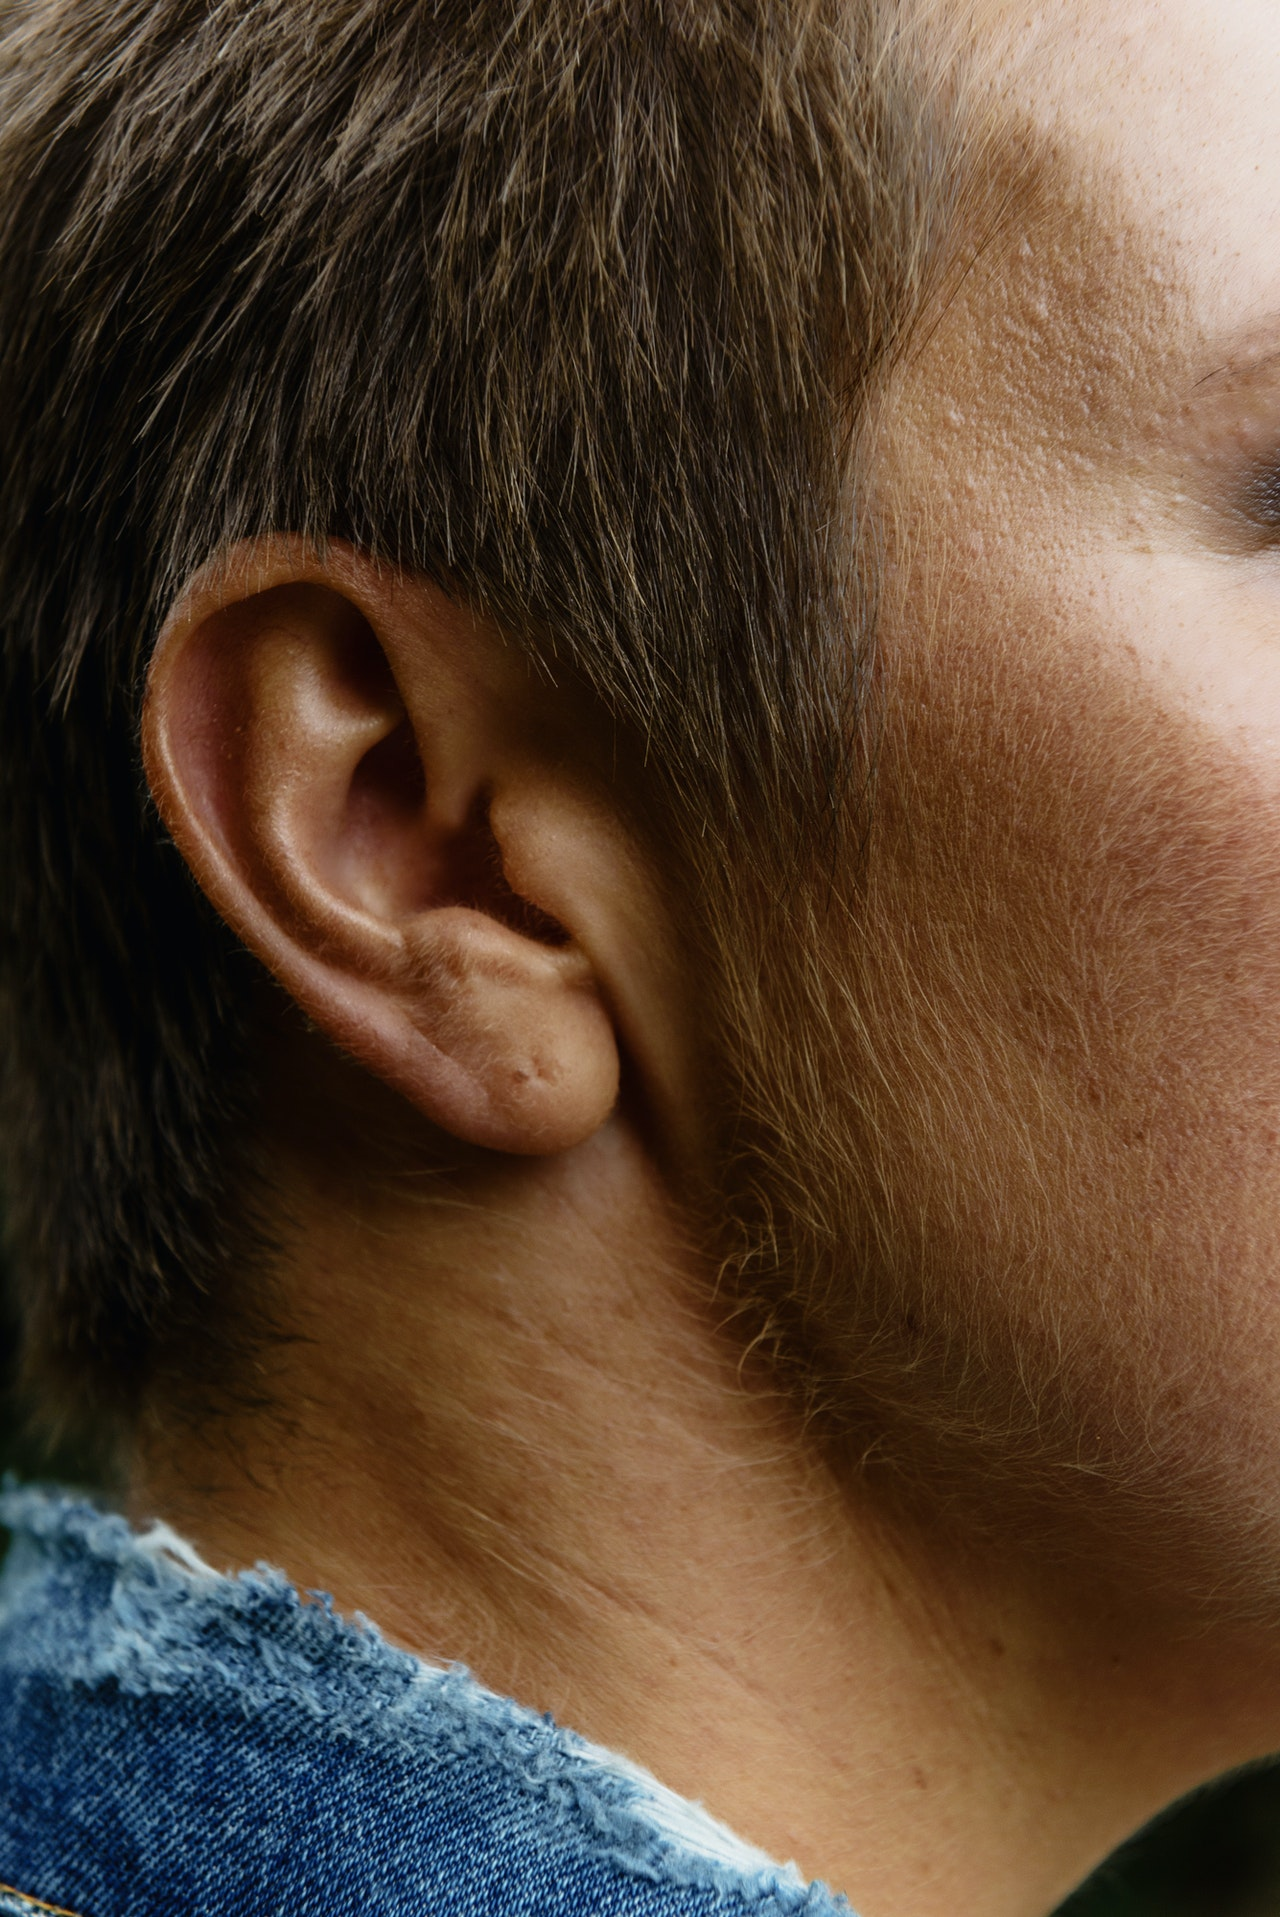 3 Possible Benefits From Getting Your Ears Pinned Back